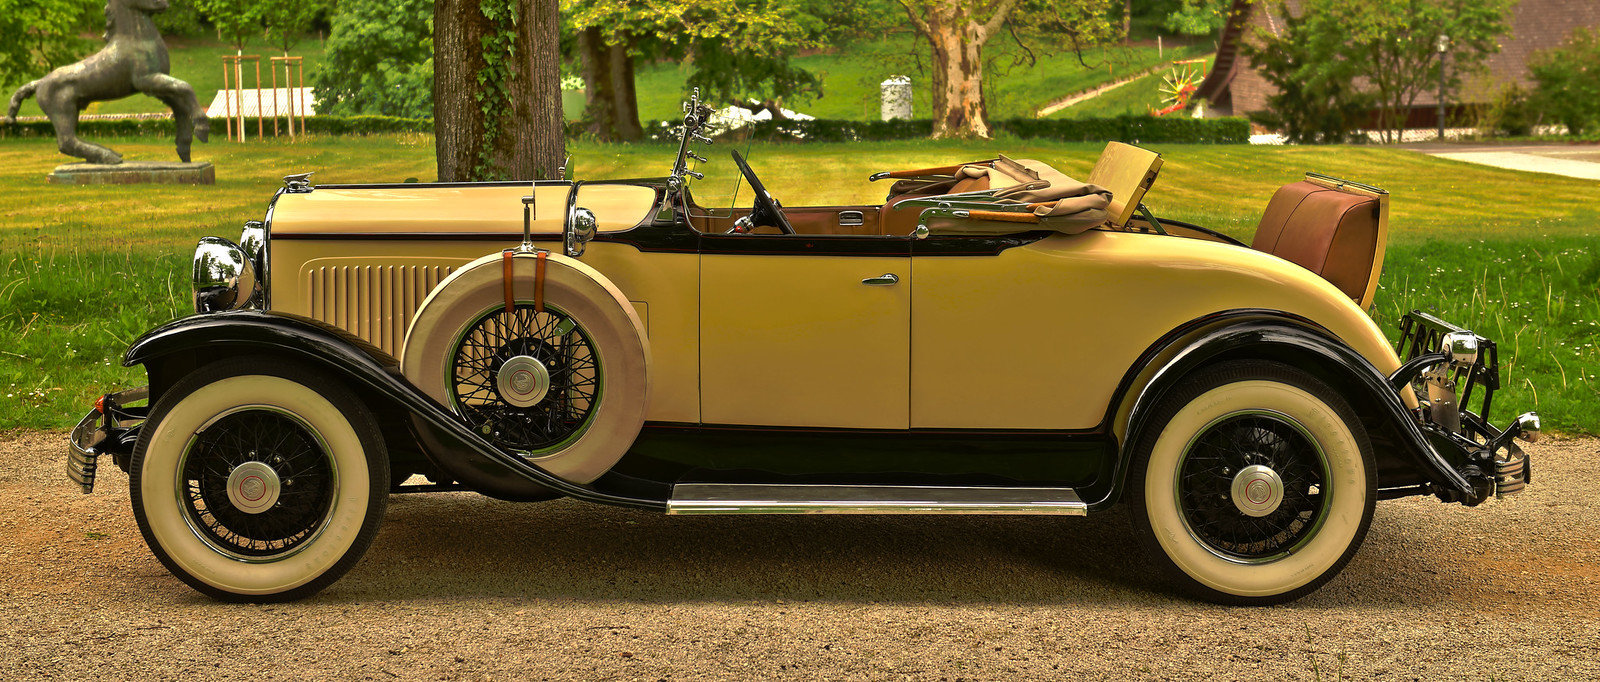 1928 Chrysler 75 Roadster Le Mans For Sale (picture 2 of 6)